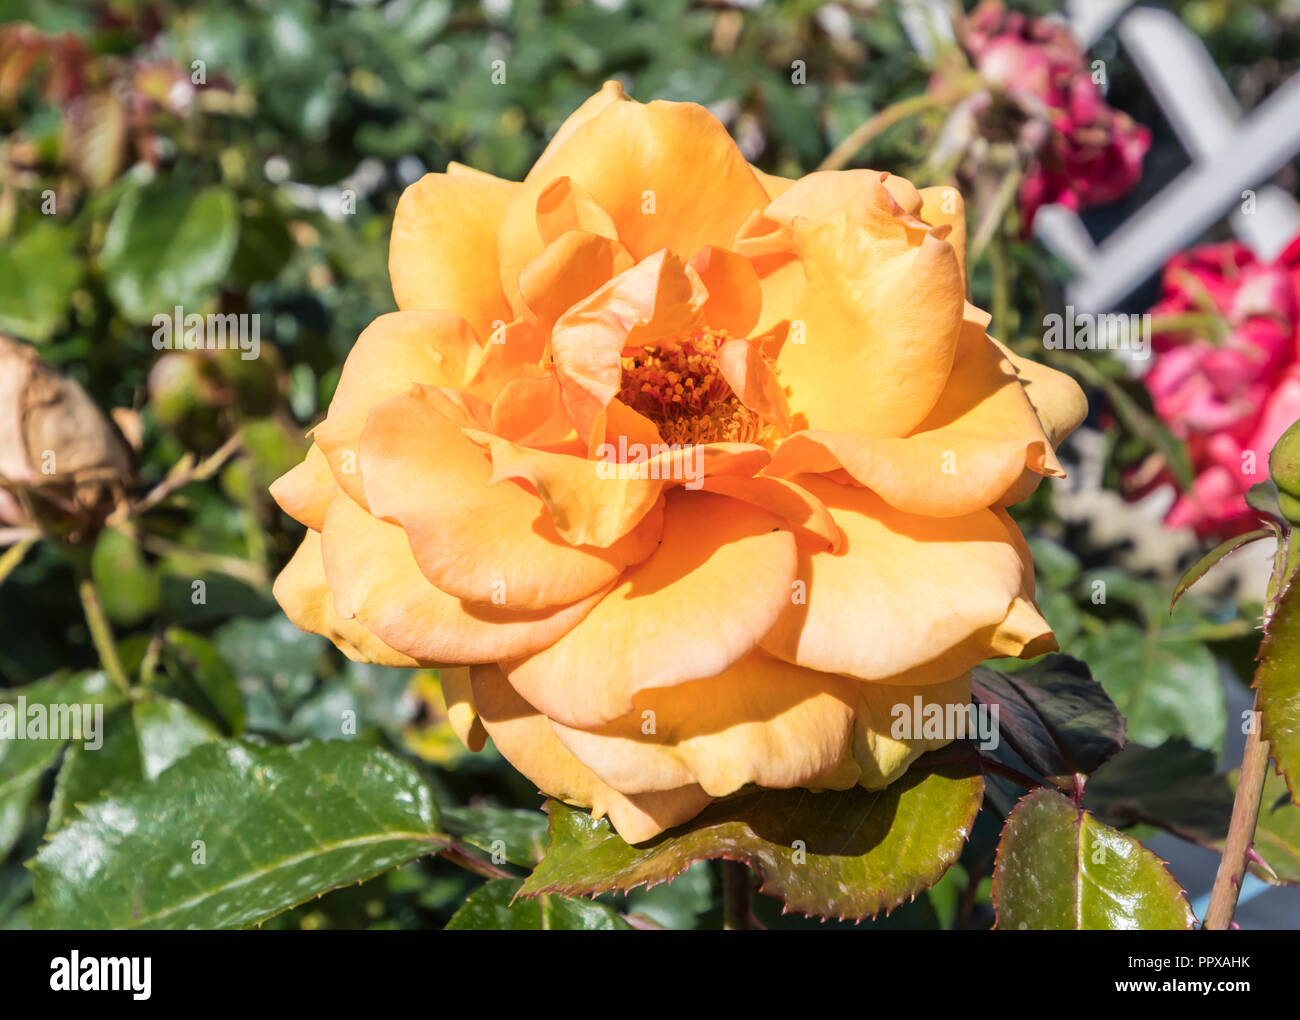 Orange Hybrid Tea 'Simply the Best' deciduous bush rose (AKA Rosa 'Simply the Best', Rose 'Macamster') in Summer in the UK. - Stock Image